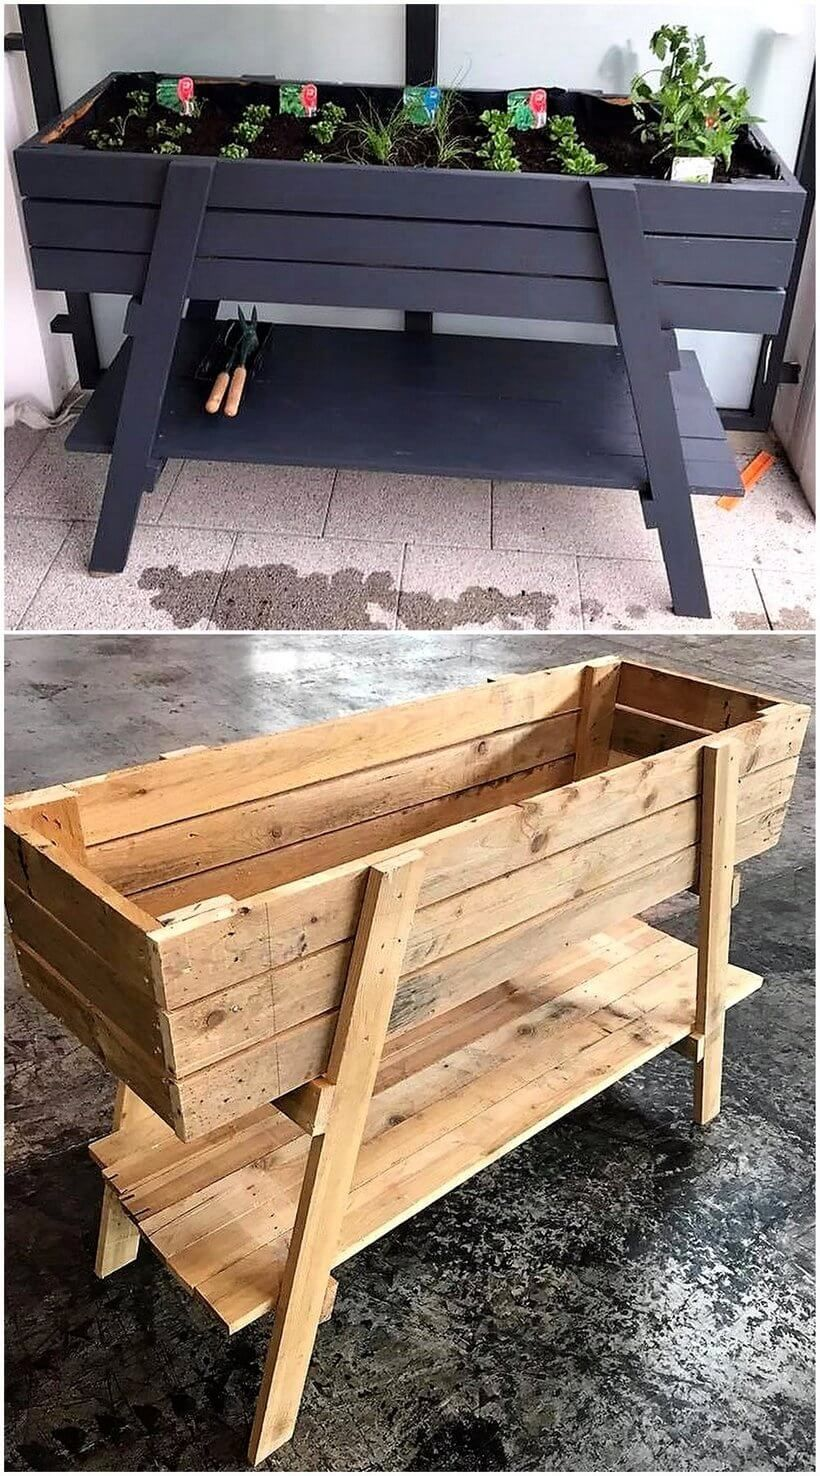 New Projects for Wood Pallet Reusing #woodprojects